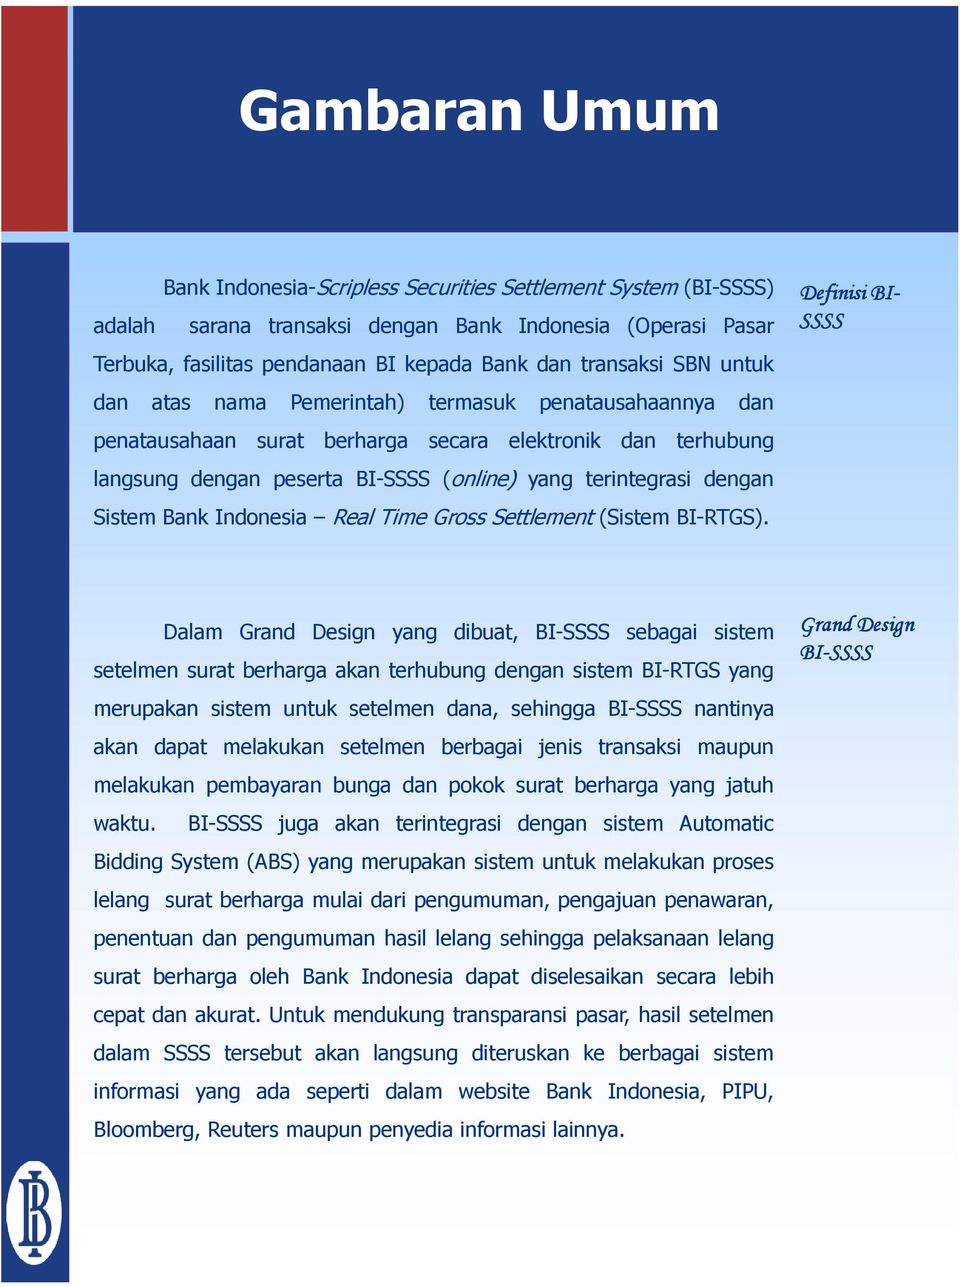 Bank Indonesia Real Time Gross Settlement (Sistem BI-RTGS).